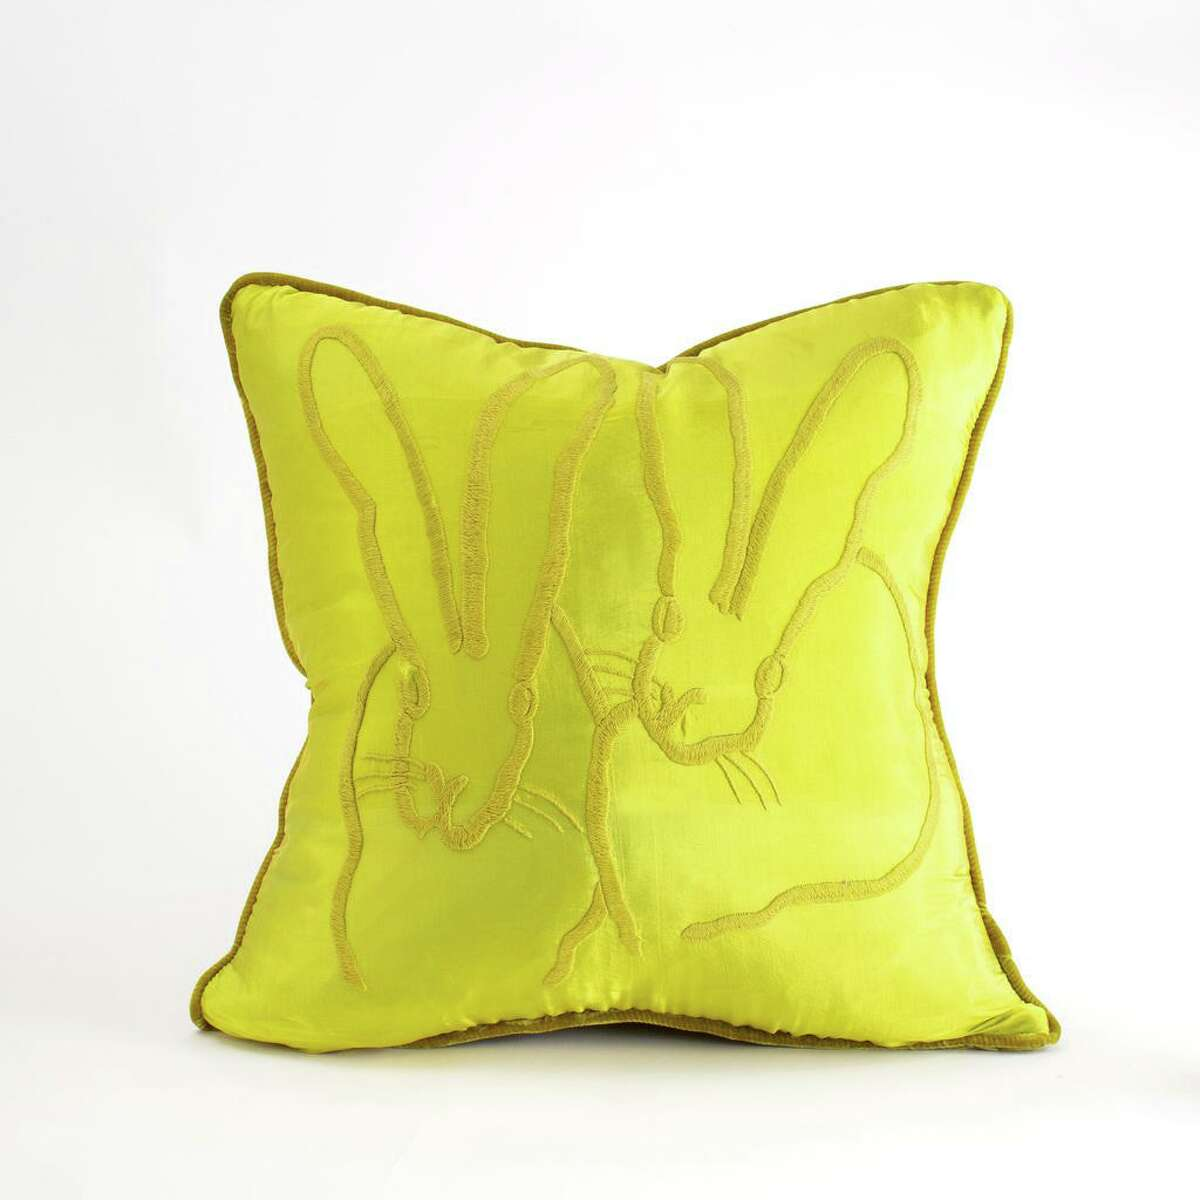 Slonem's hand-embroidered pillows with silk fronts and velvet backs come in several colors and in three sizes: 18x18 ($460), 20x20 ($475) and 22x22 ($495).